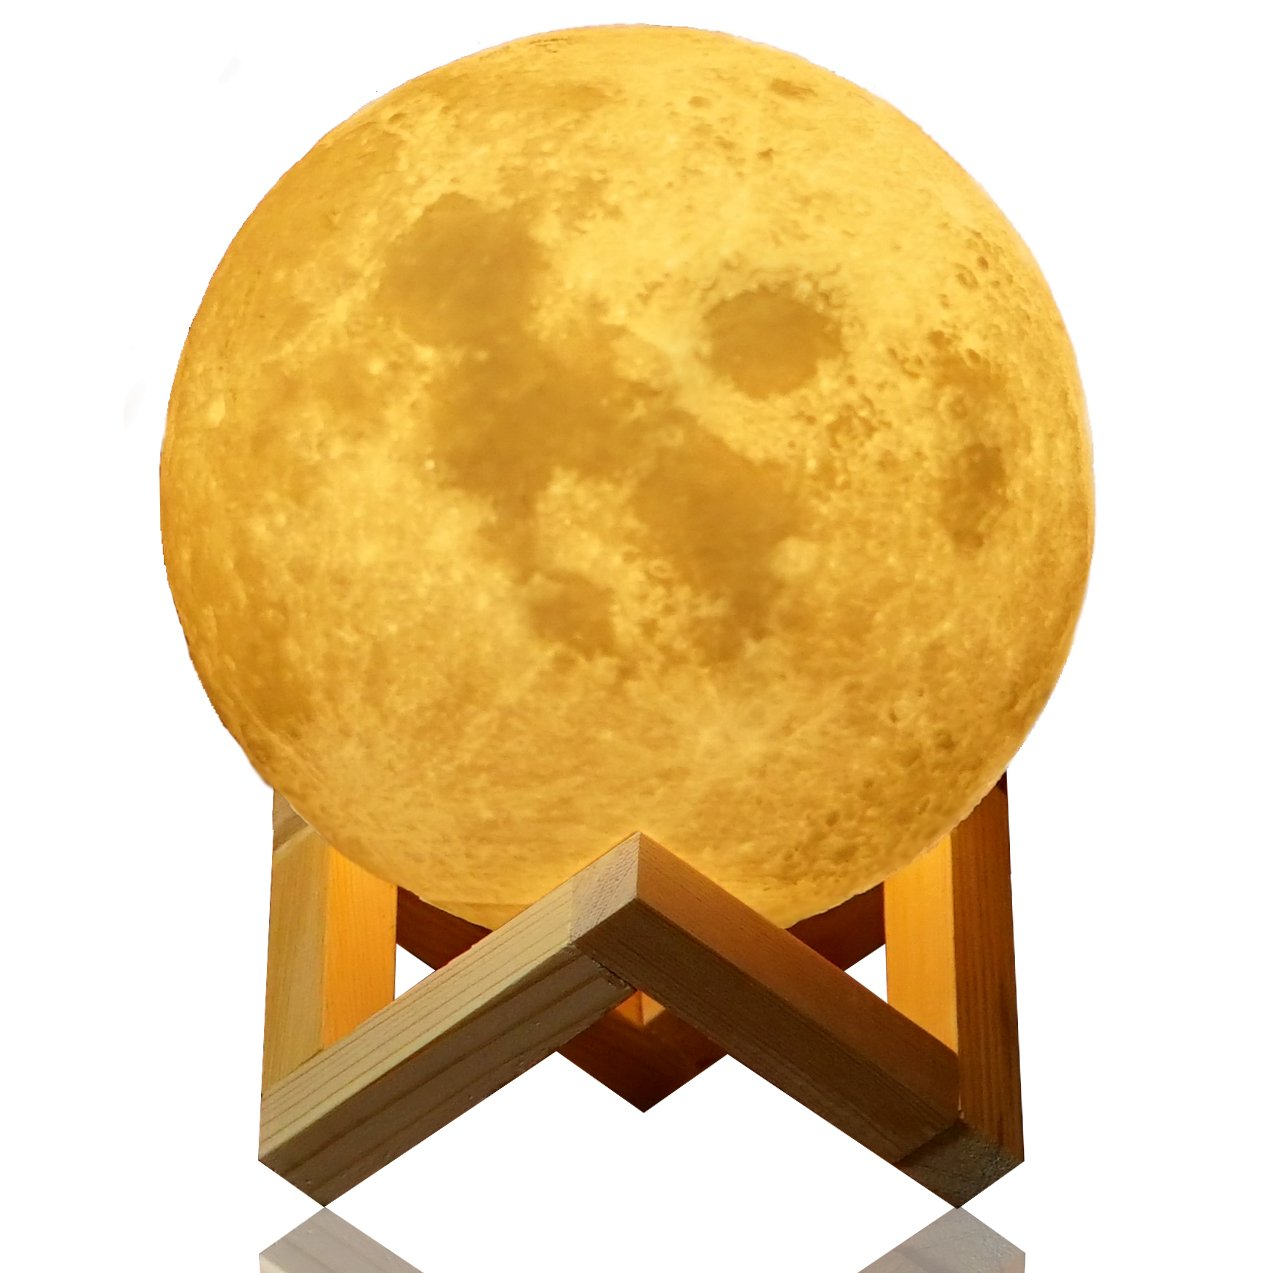 Extra Large Moon Lamp Lighting Night LED 3D Printing Warm Cool White Dimmable Touch Control Brightness USB Charging Rechargeable light Home Decorative for Baby kids gift wooden stand 18cm (7.3Inch)